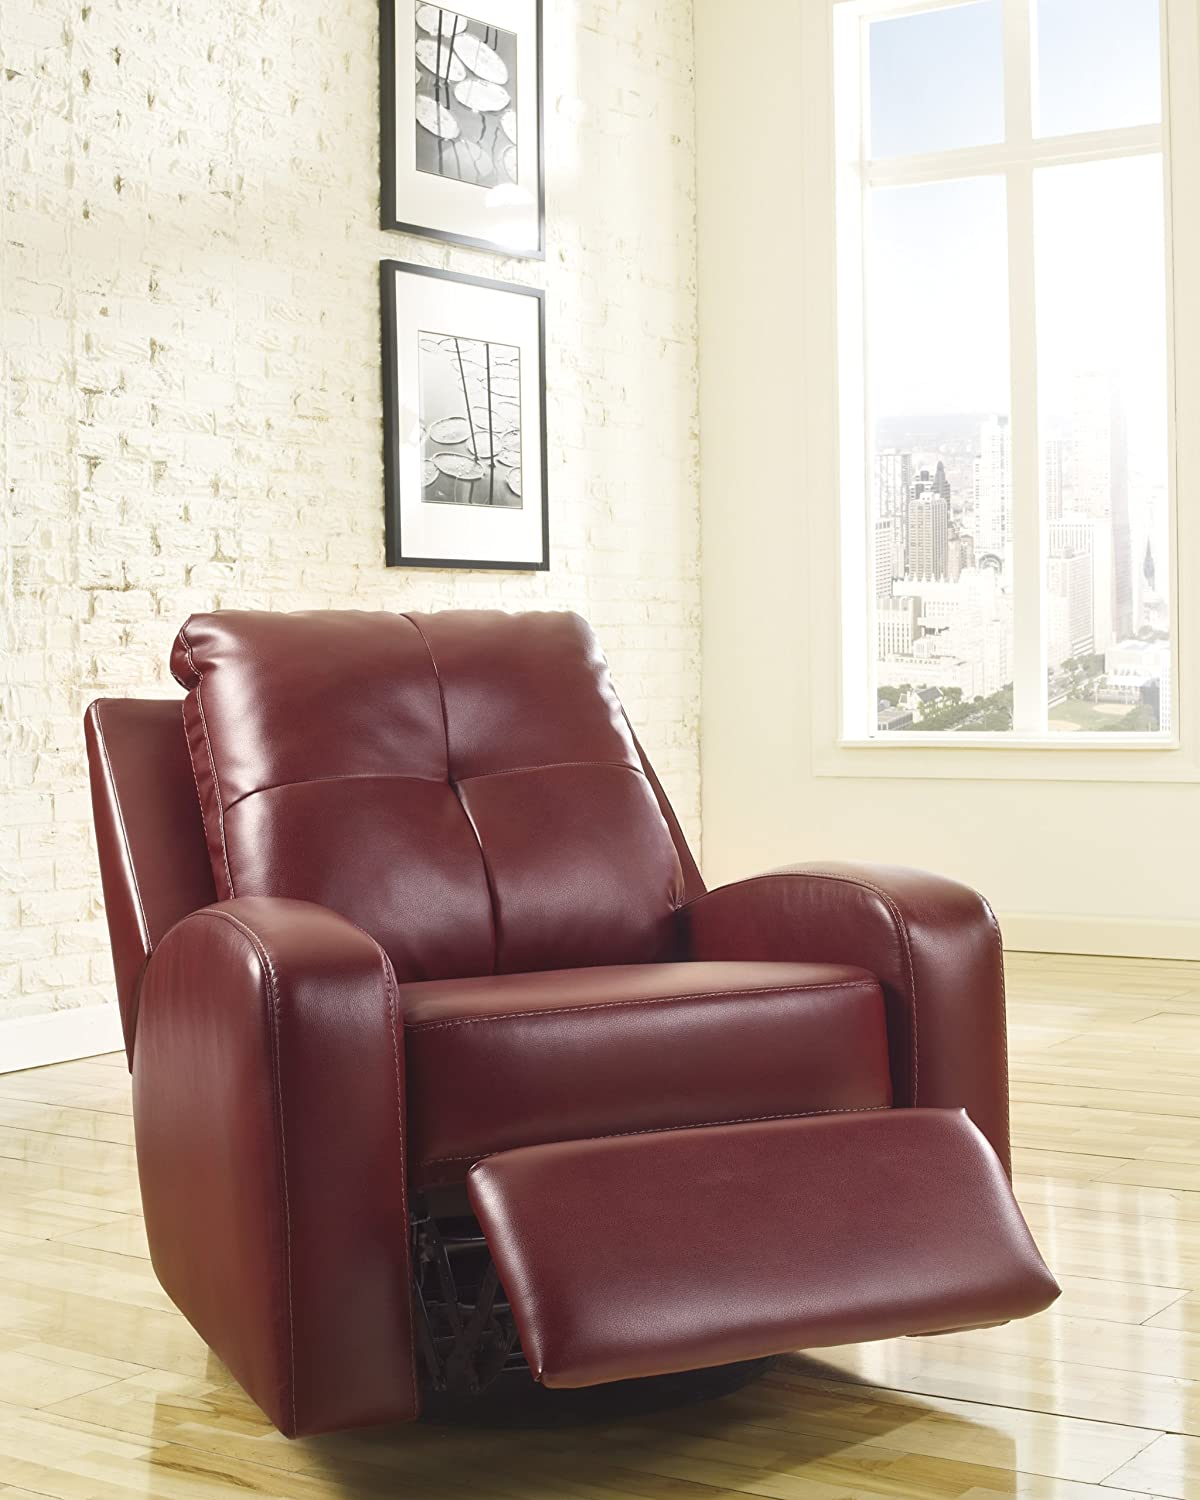 Amazon.com: Ashley Furniture Signature Design   Mannix Swivel Recliner  Chair   Manual Glider Reclining Motion   Red: Kitchen U0026 Dining